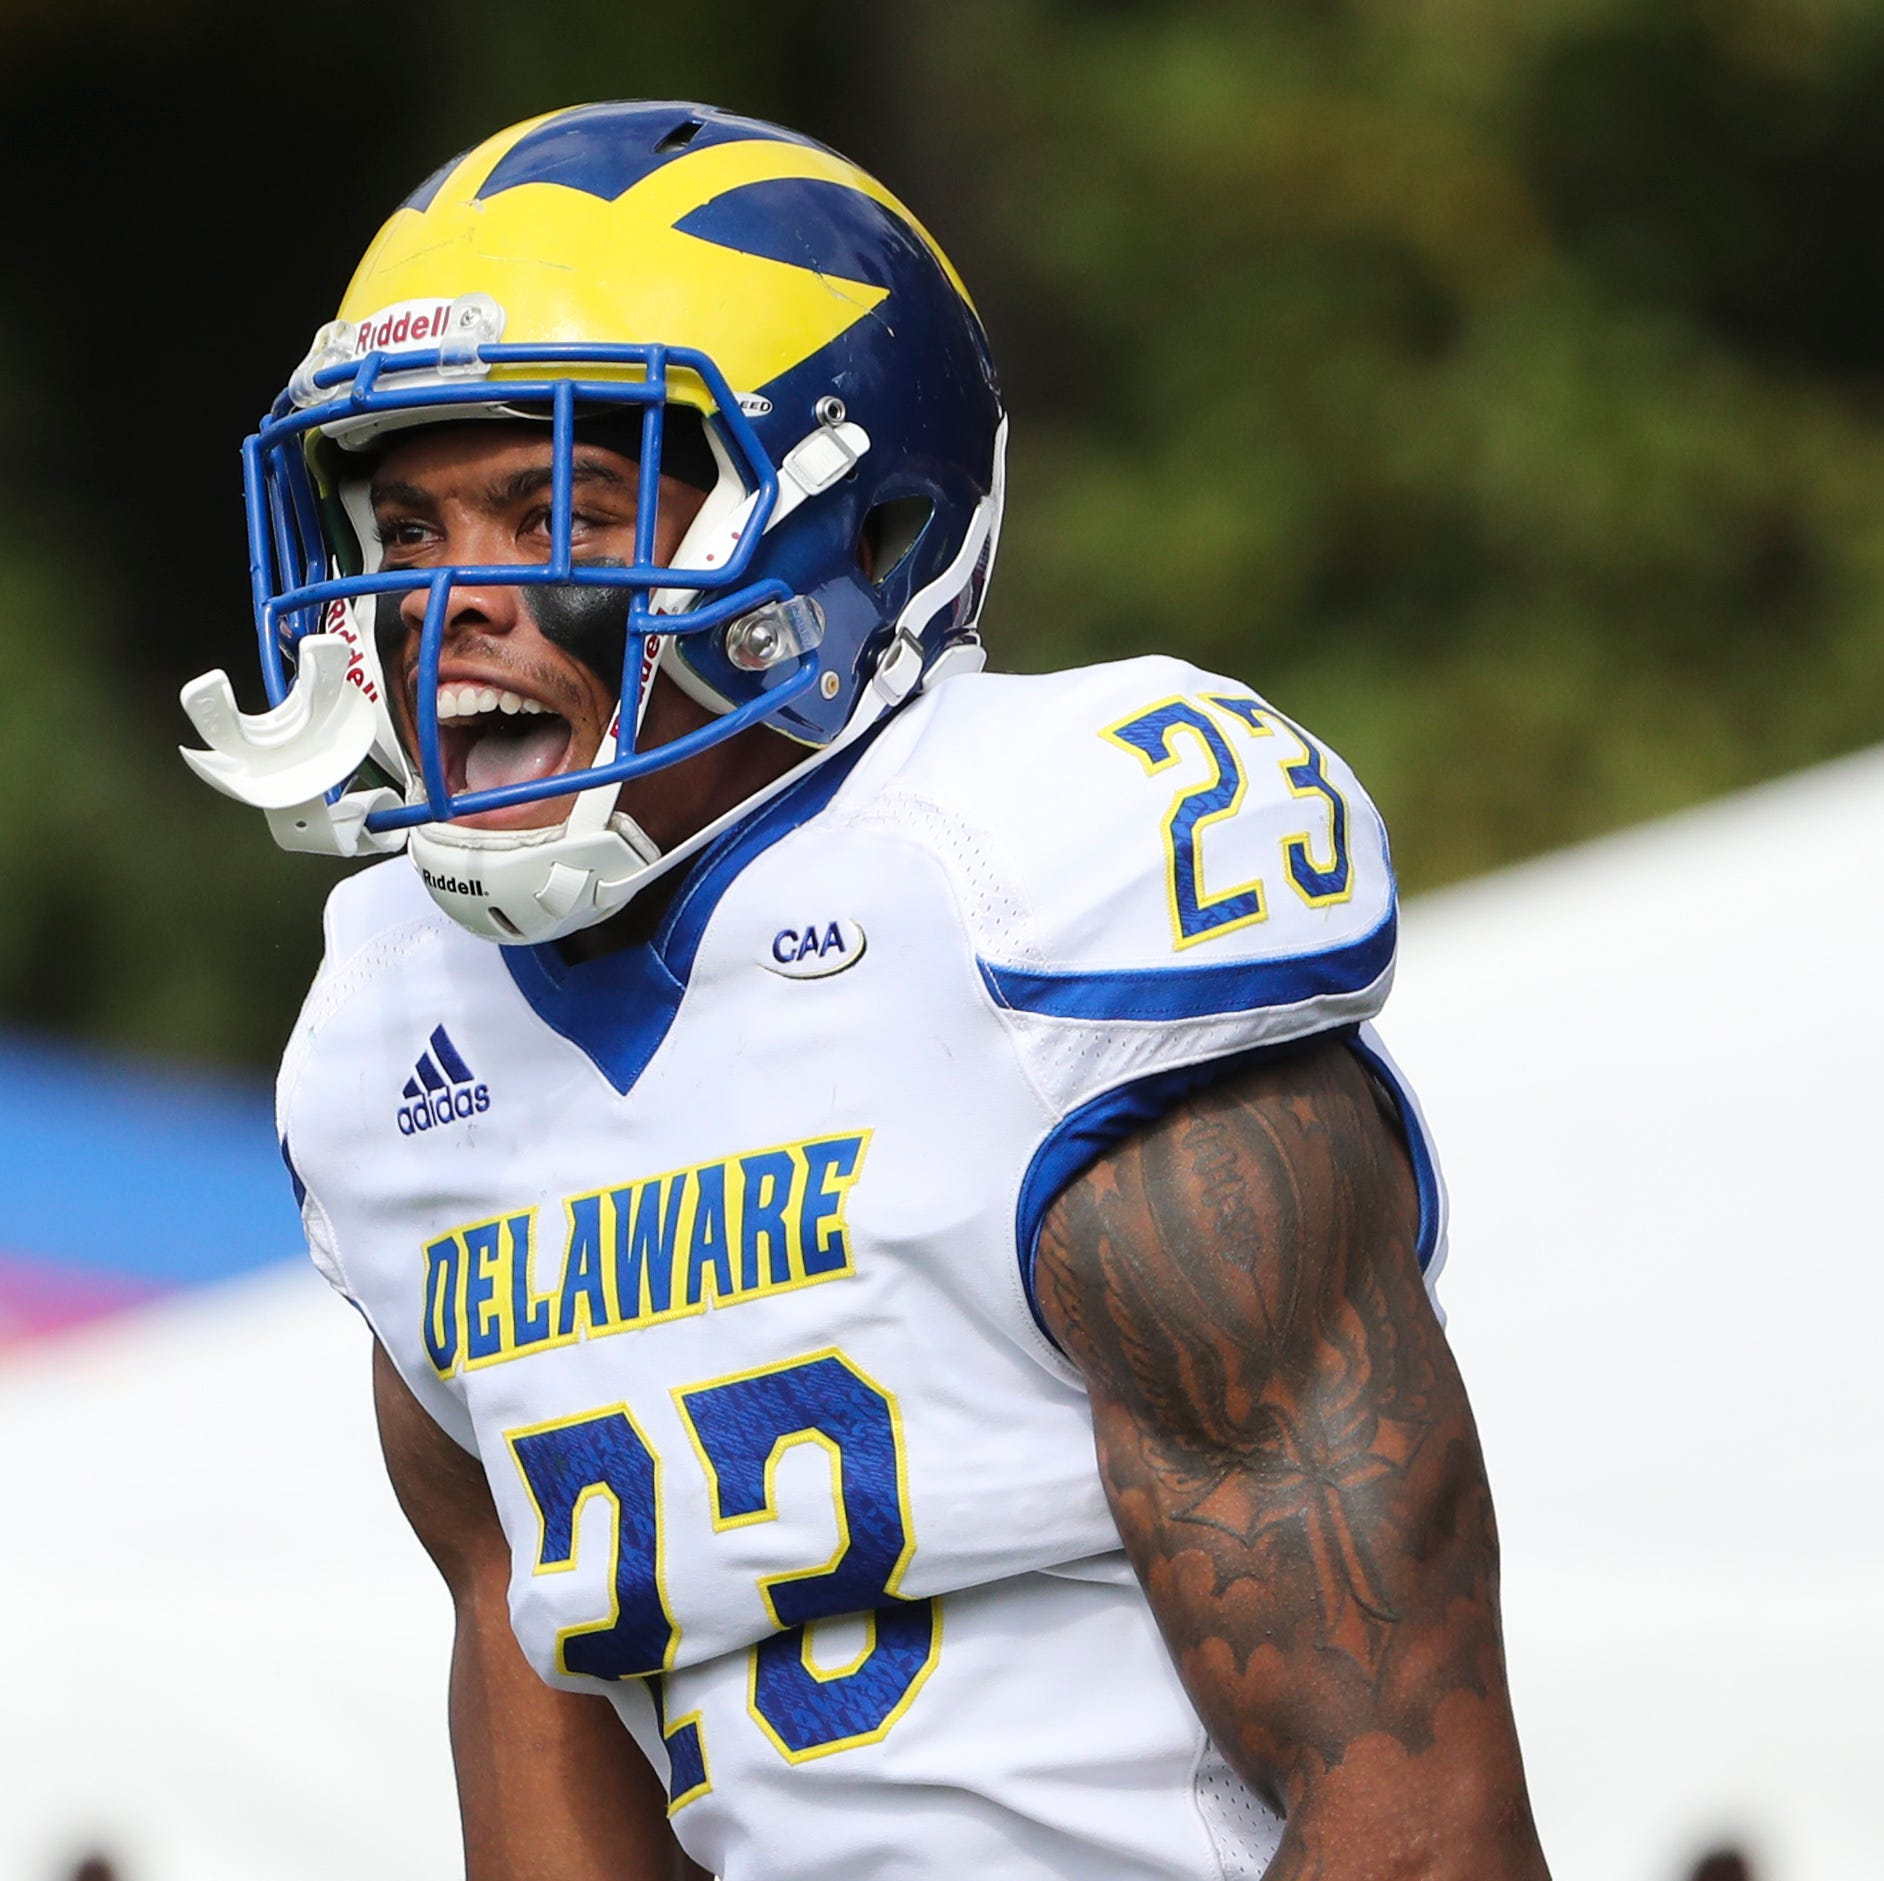 In NFL draft, 2 Delaware players expected to be picked early